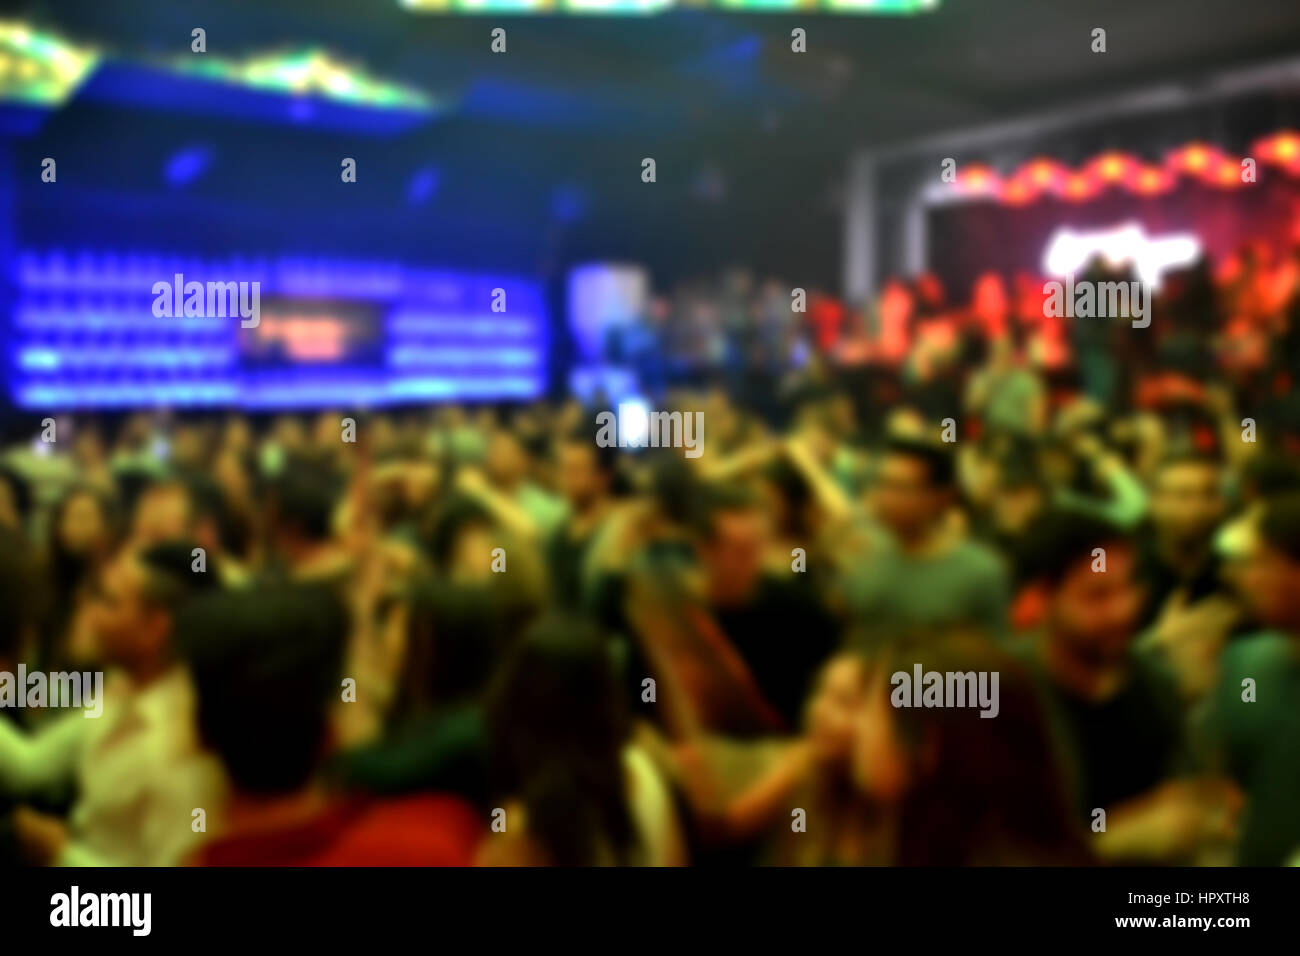 Blurred background of a crowd in an indoor party - Stock Image